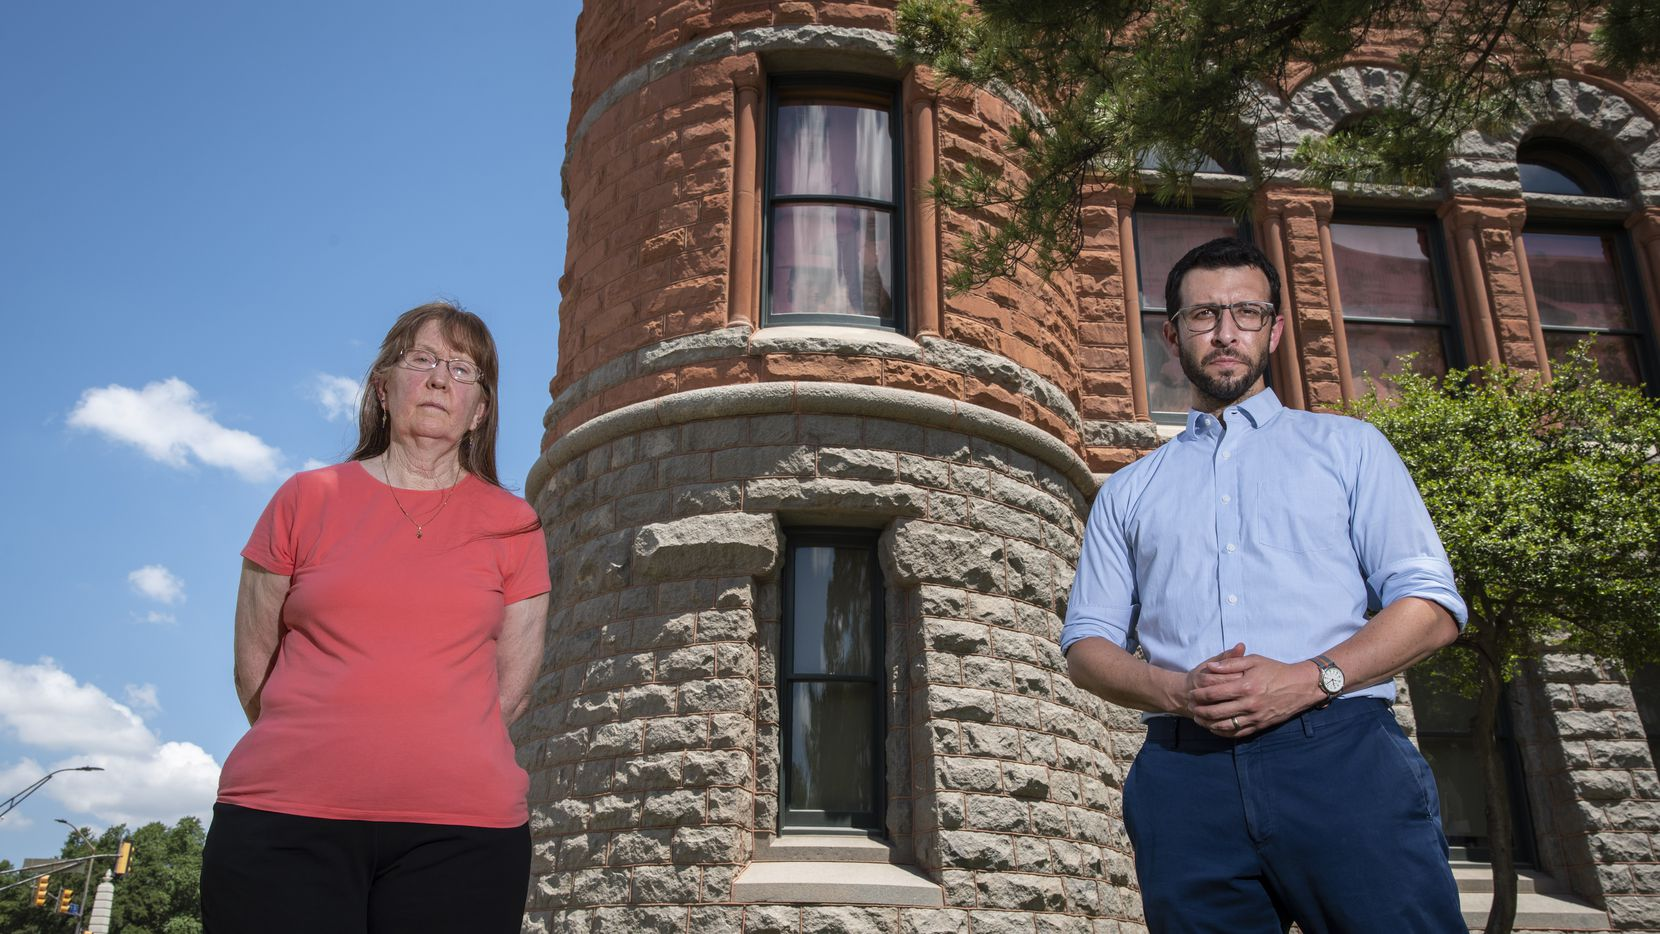 Sally Dobbie, left, and Chris Dowdy, vice president of academic affairs at Paul Quinn College, outside the Old Red Museum of Dallas County History and Culture in downtown Dallas. Dobbie and Dowdy are asking the state  to place a historical marker commemorating the lynching of Allen Brooks in 1910. The window between the two on the second floor of the museum is the location where Allen Brooks was pushed out the window with a rope around his neck. He was dragged along Main Street and later hung in front of a crowd of thousands.